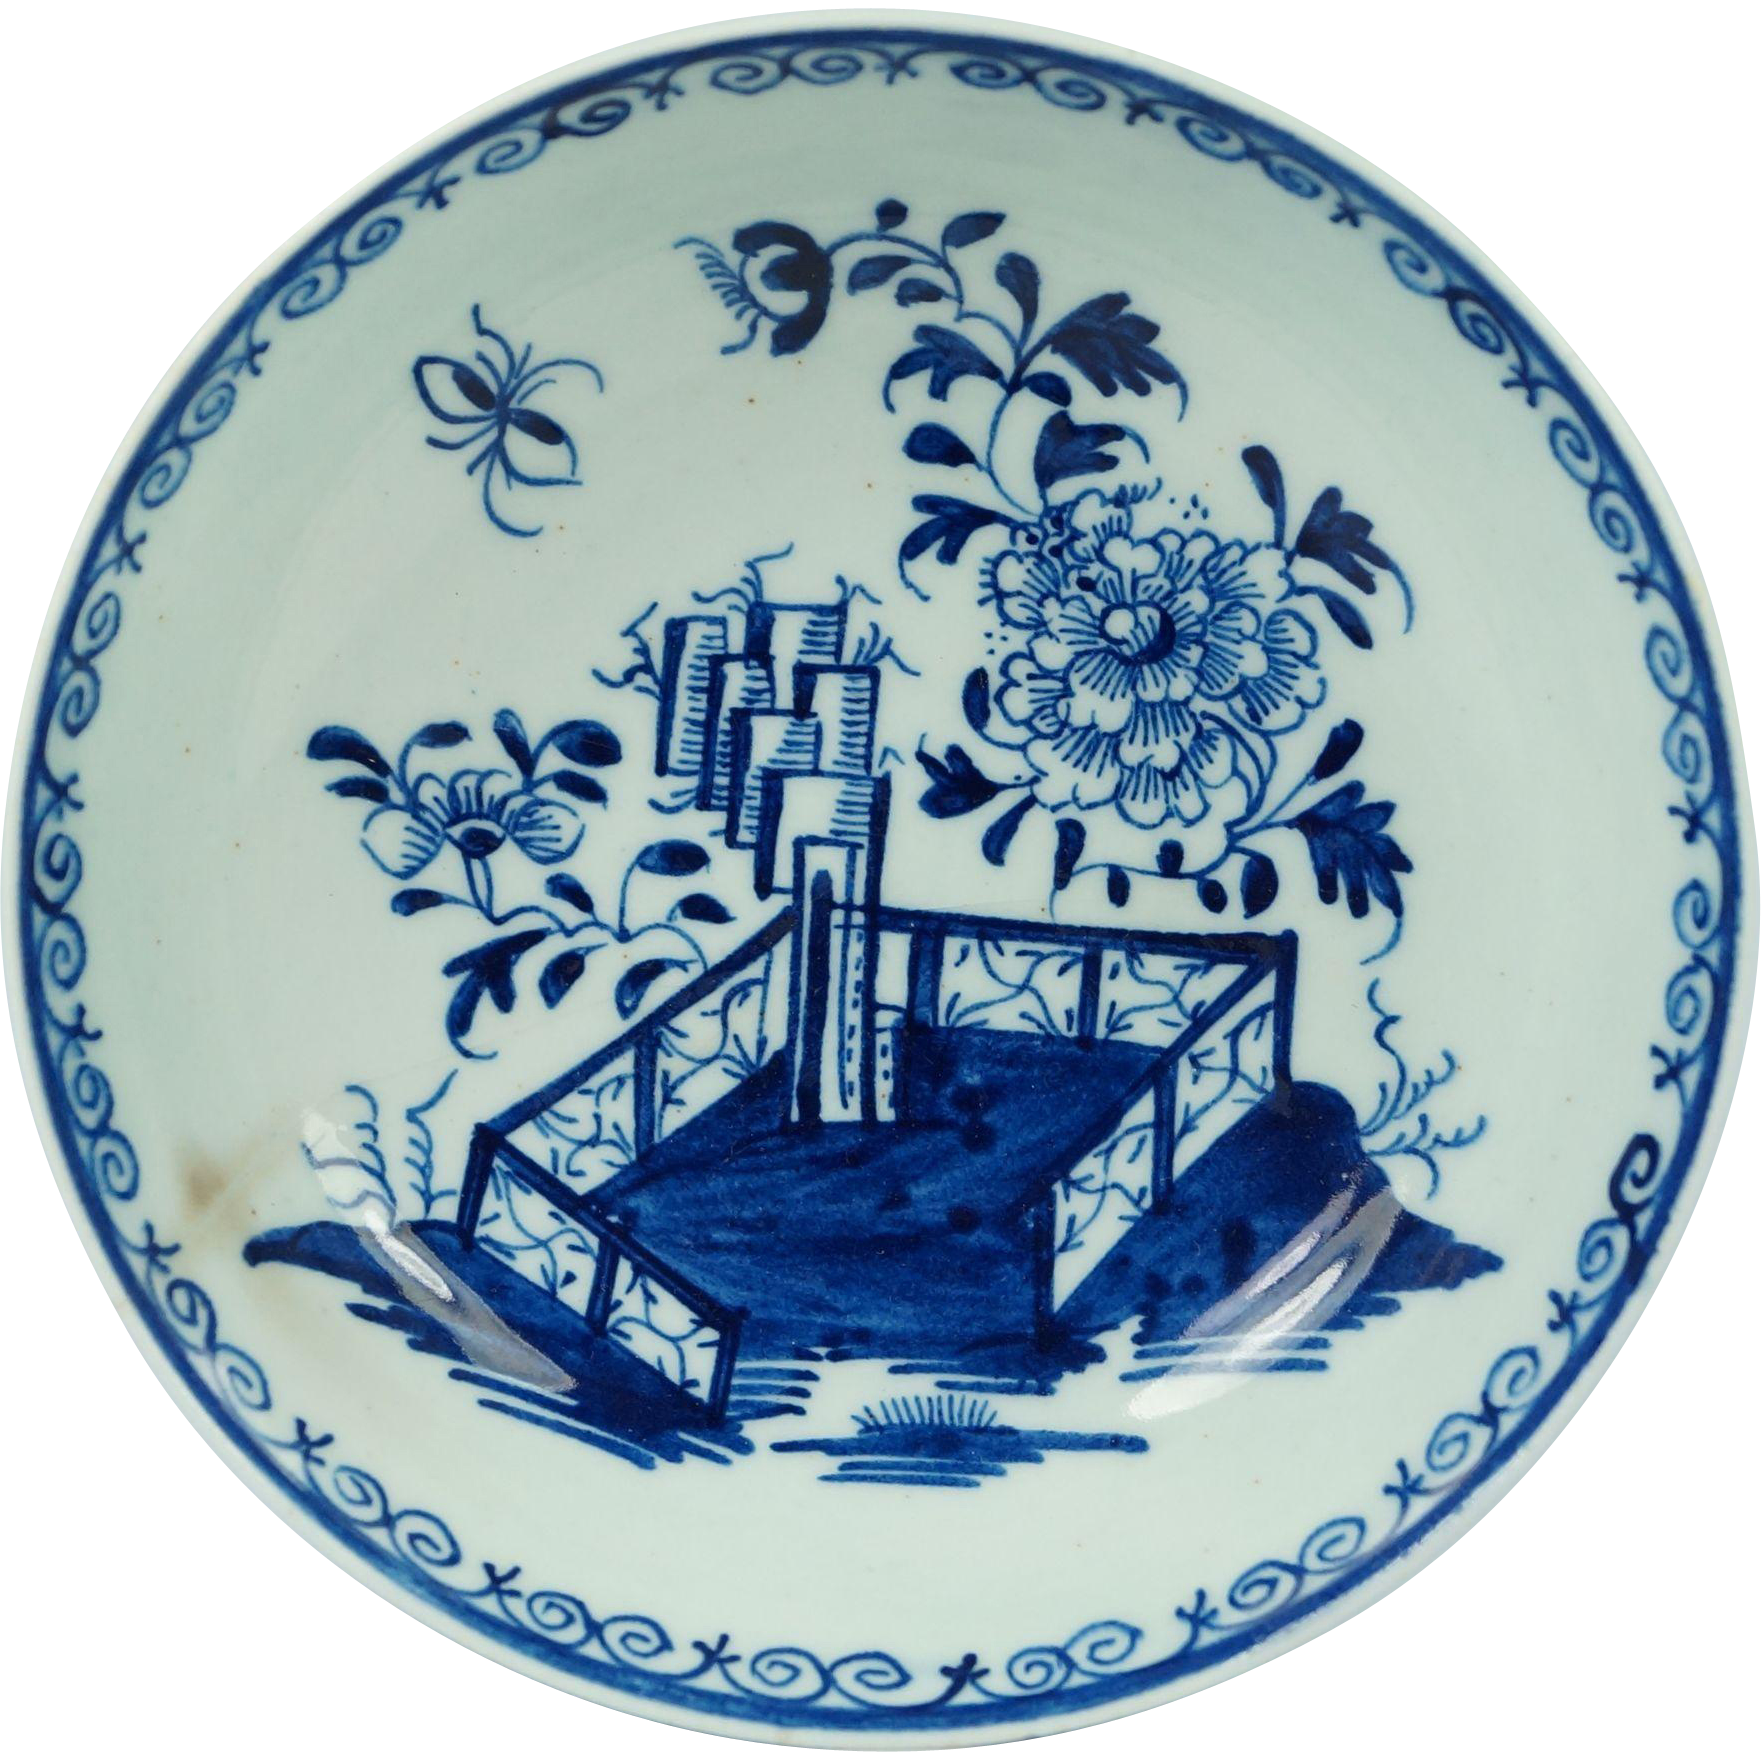 18th Century Lowestoft Porcelain Plate Blue and White Hollow Rock Fence Peony Pattern English Circa 1780